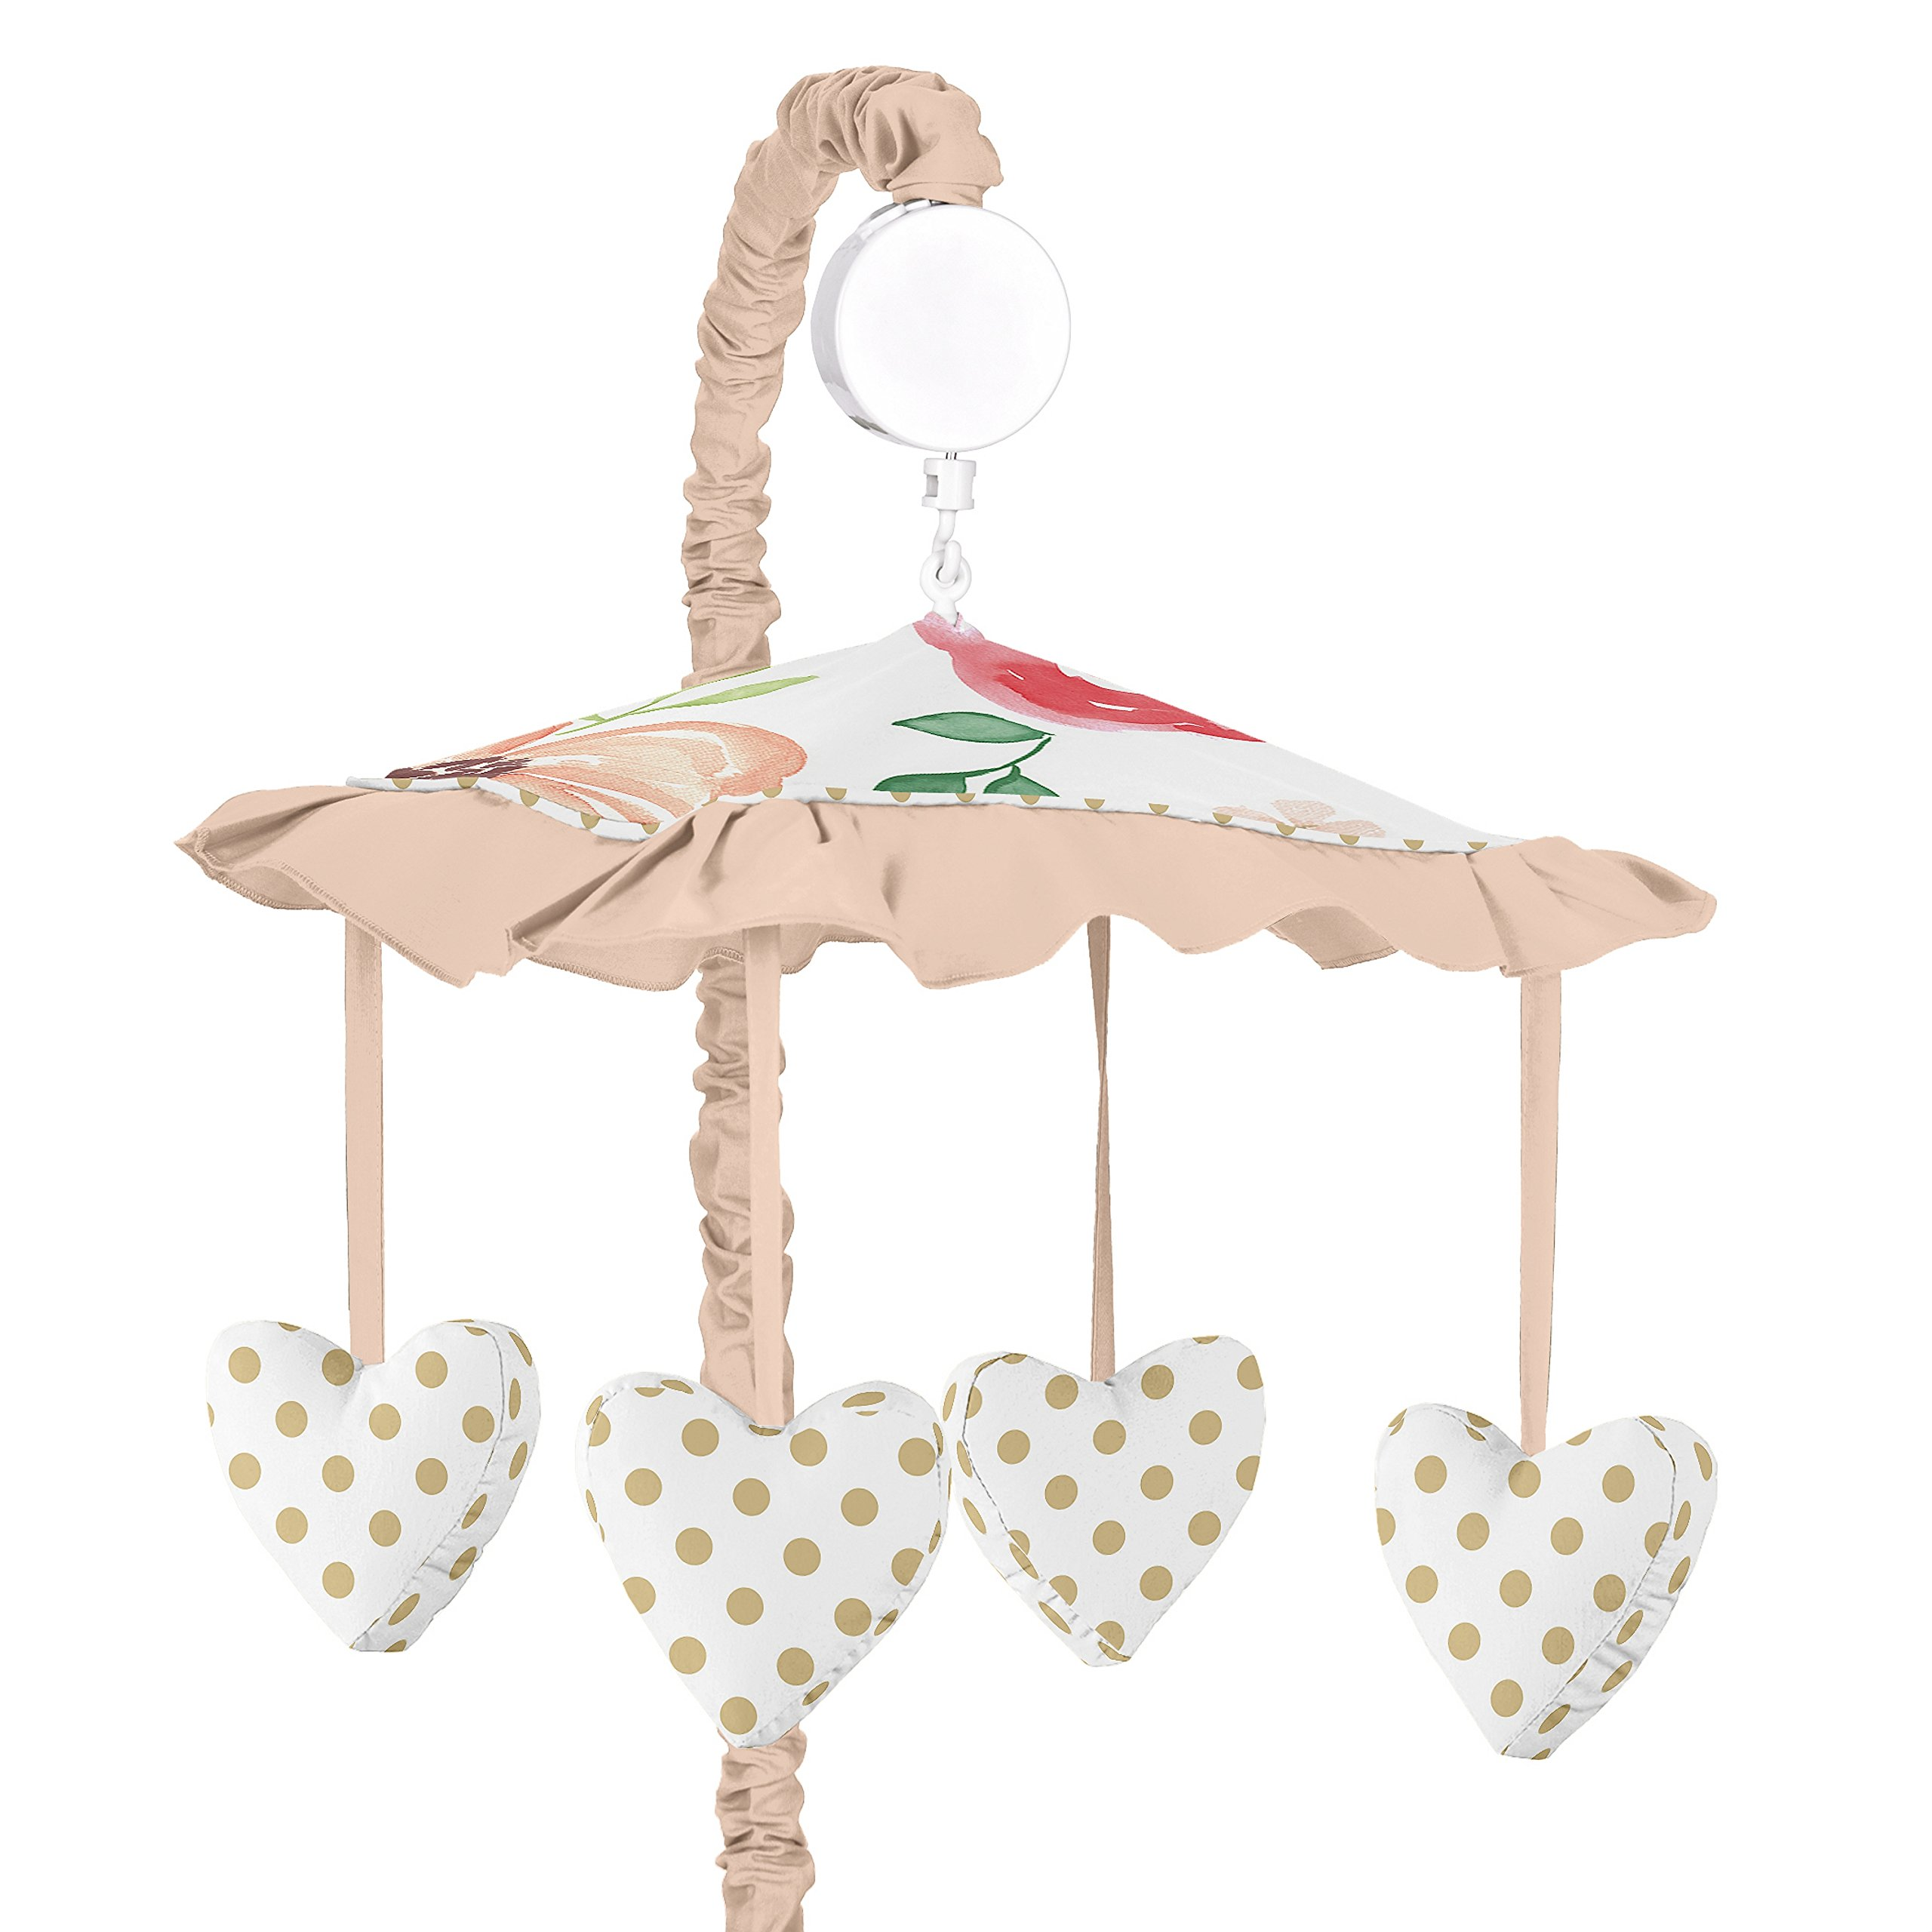 Sweet JoJo Designs Peach, Green and Gold Musical Baby Crib Mobile for Watercolor Floral Collection - Pink Rose Flower